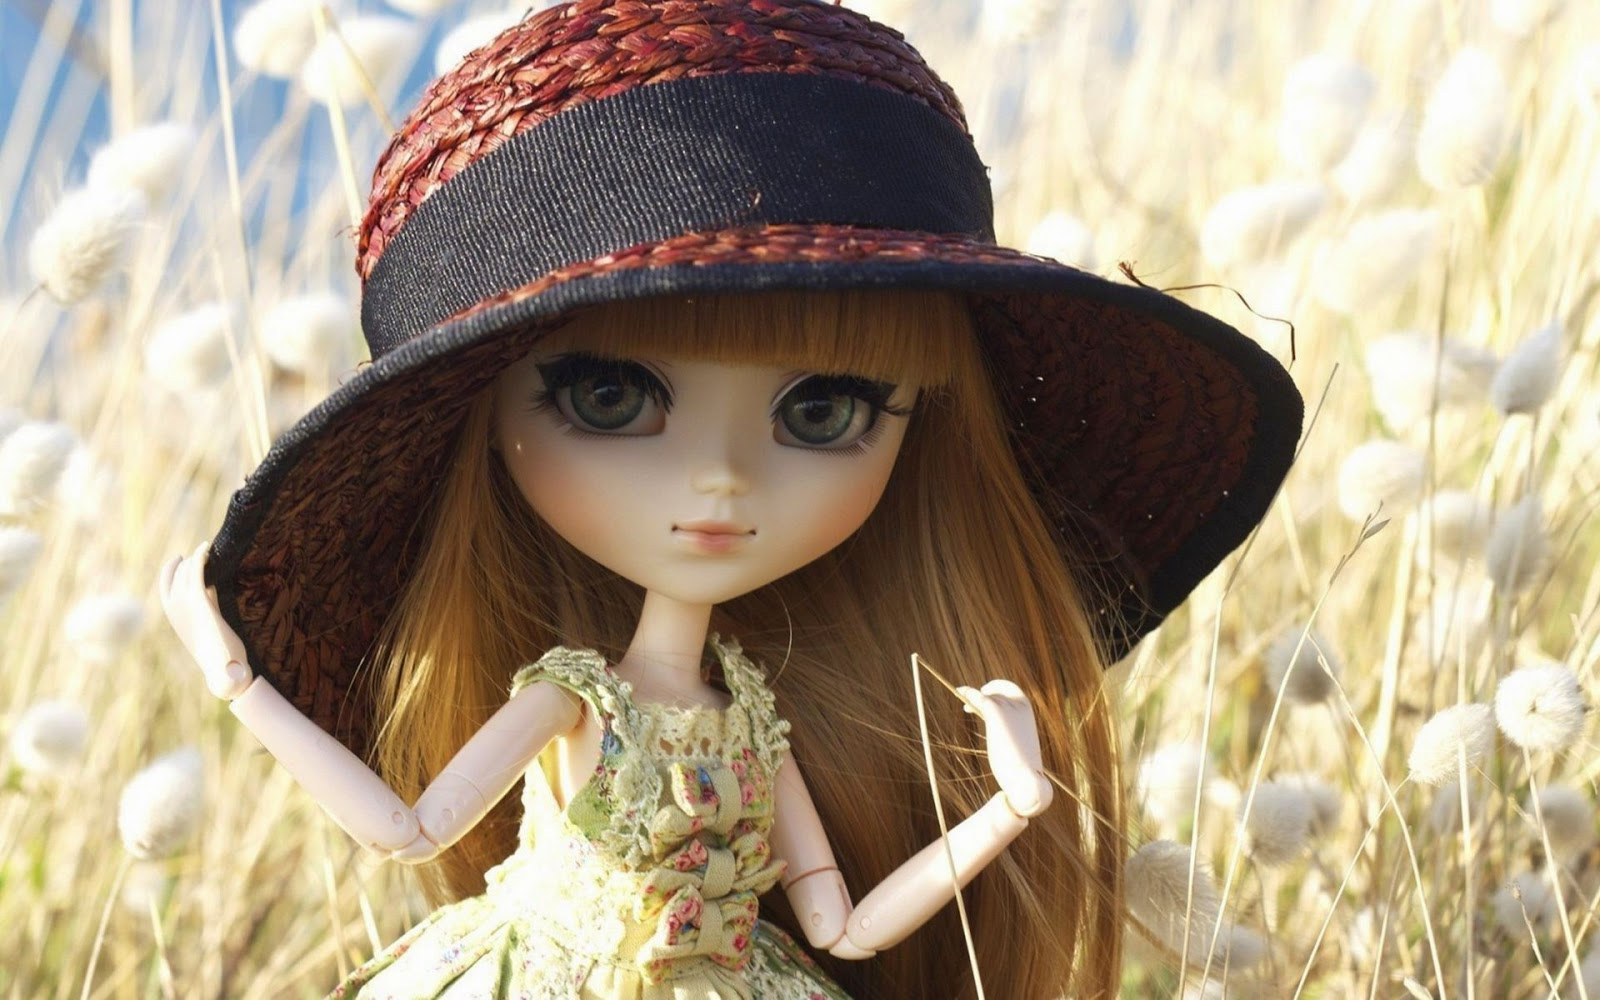 Cute Doll « Best Wallpapers 4 You